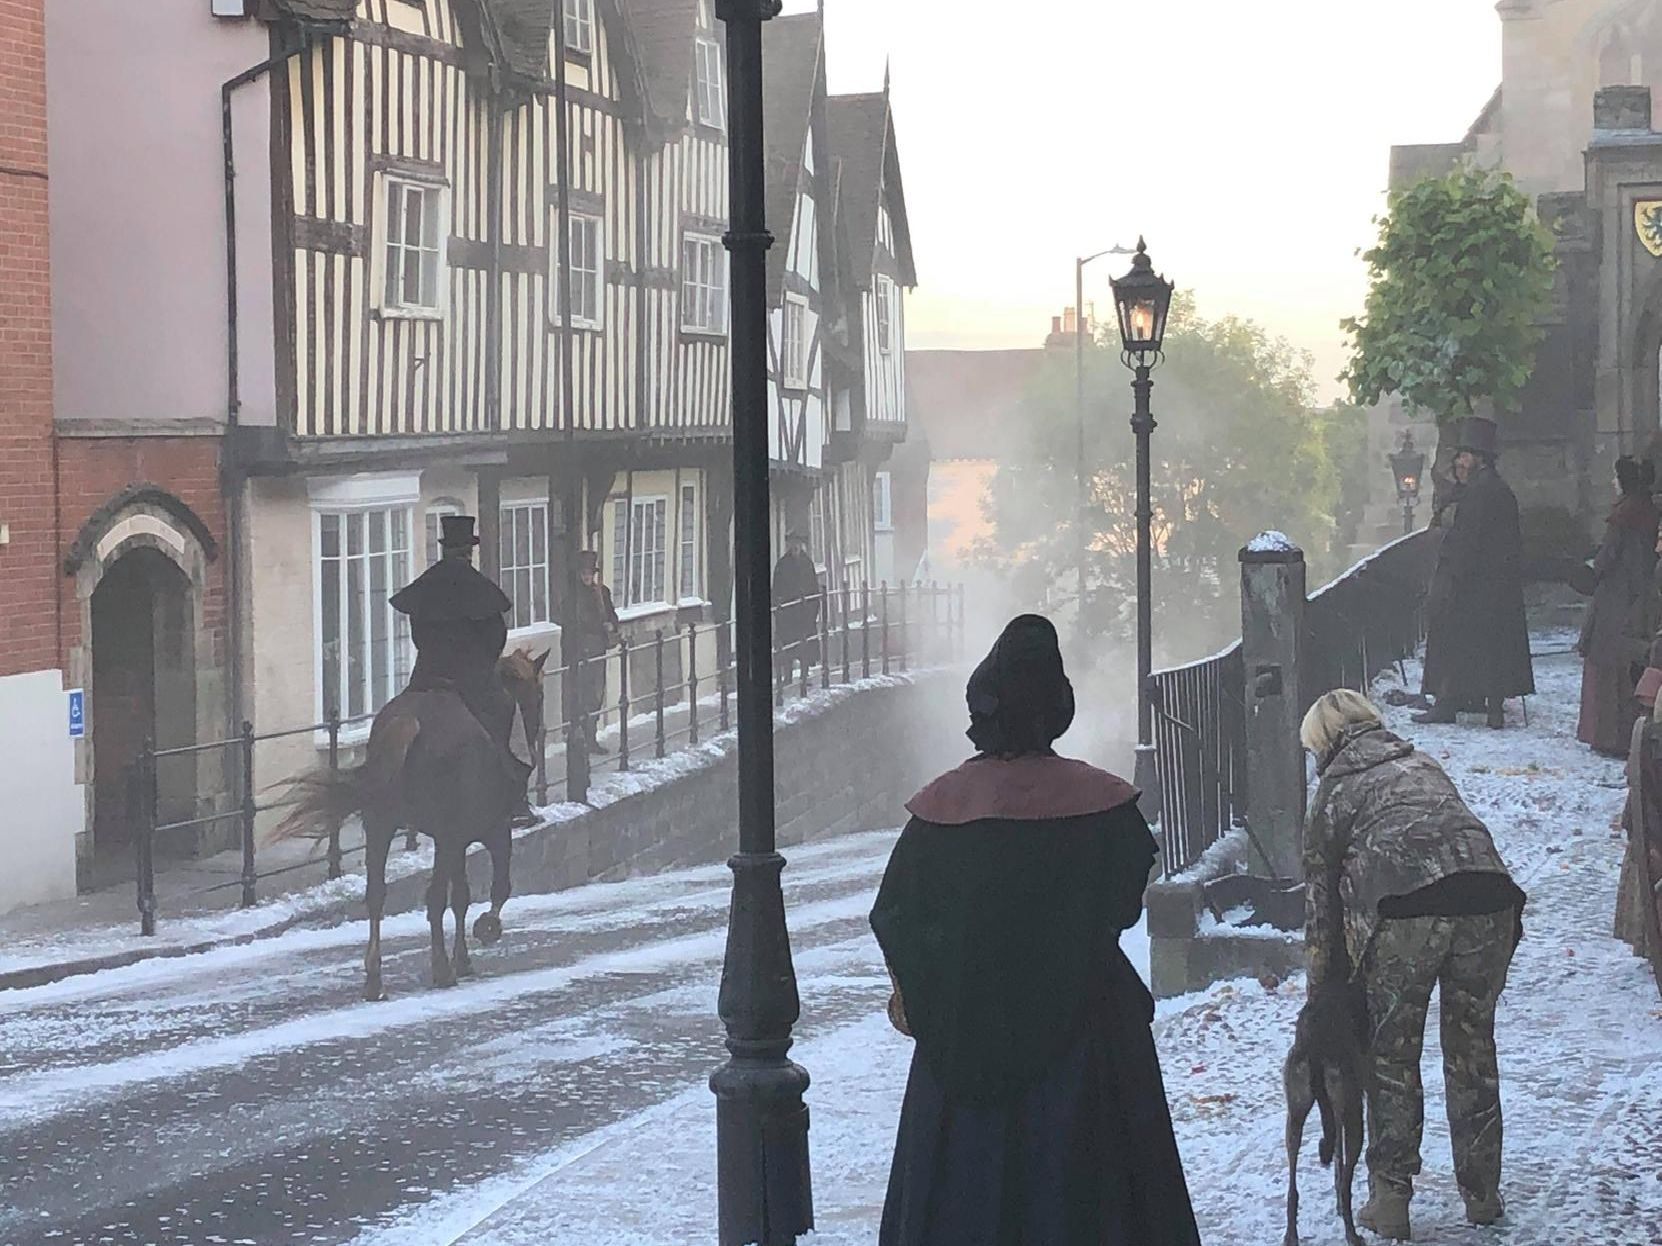 Filming of 'A Christmas Carol' in Warwick. Photo by Mandy Littlejohn.